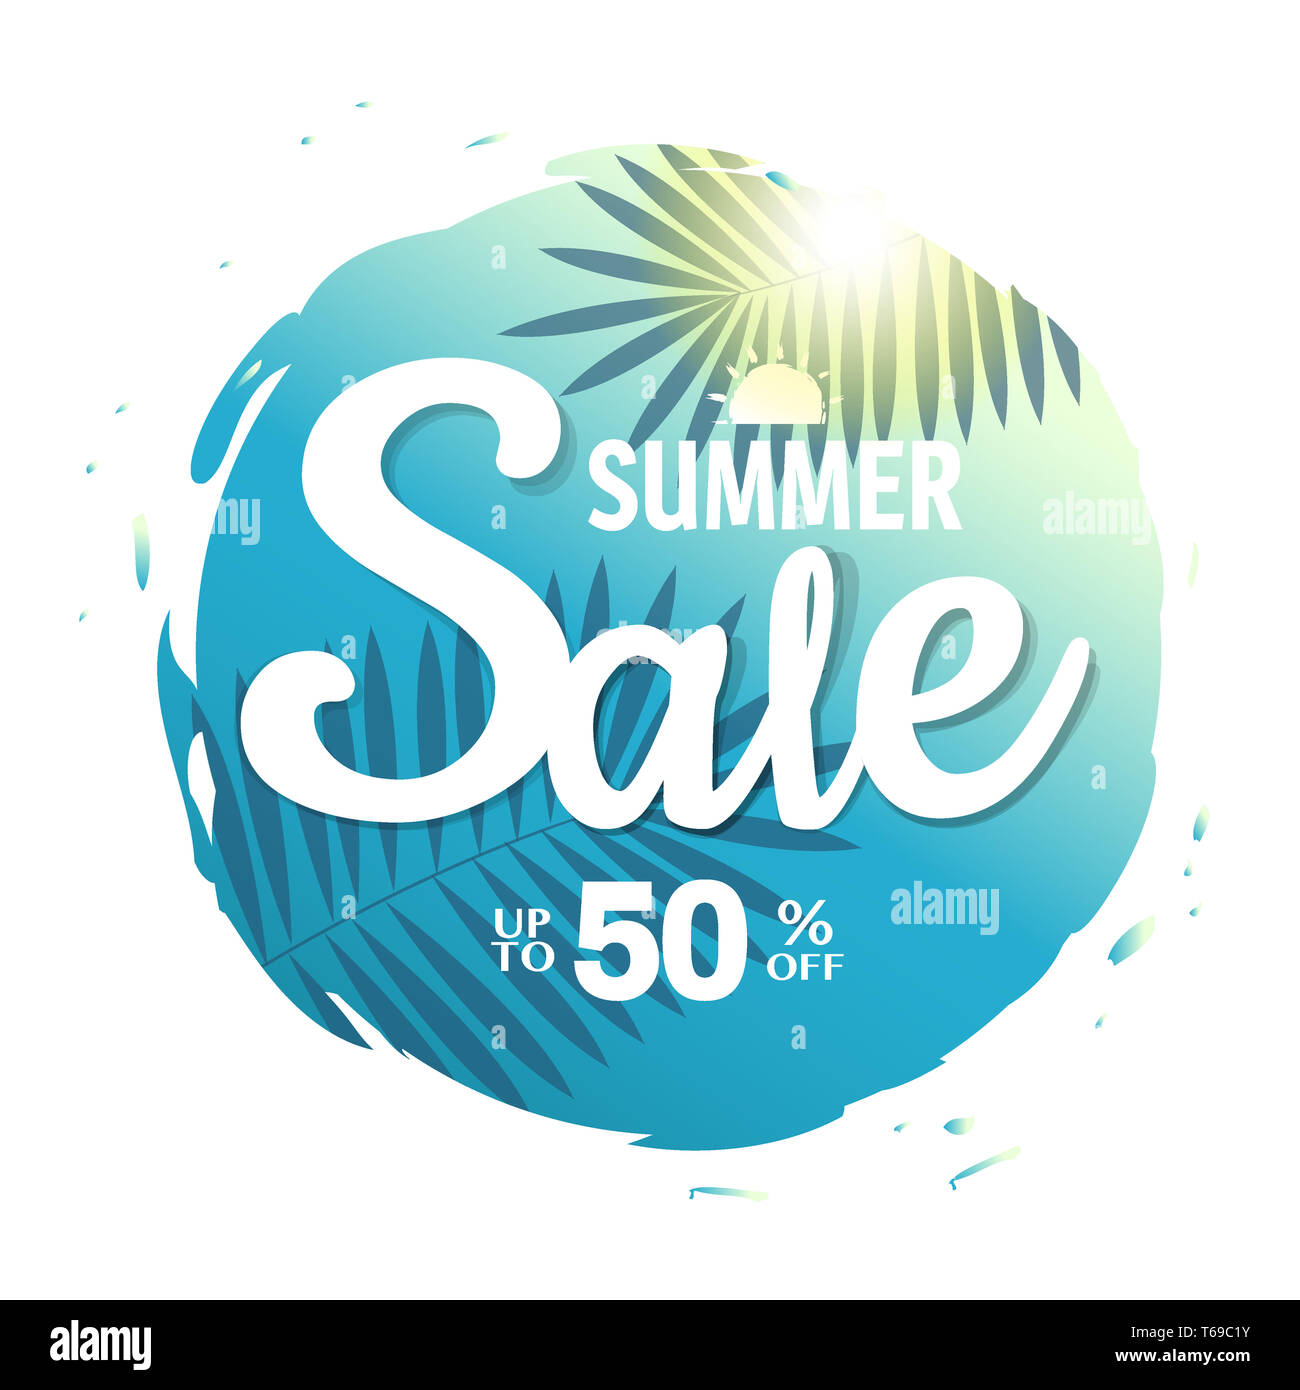 Summer Sale Poster - Stock Image